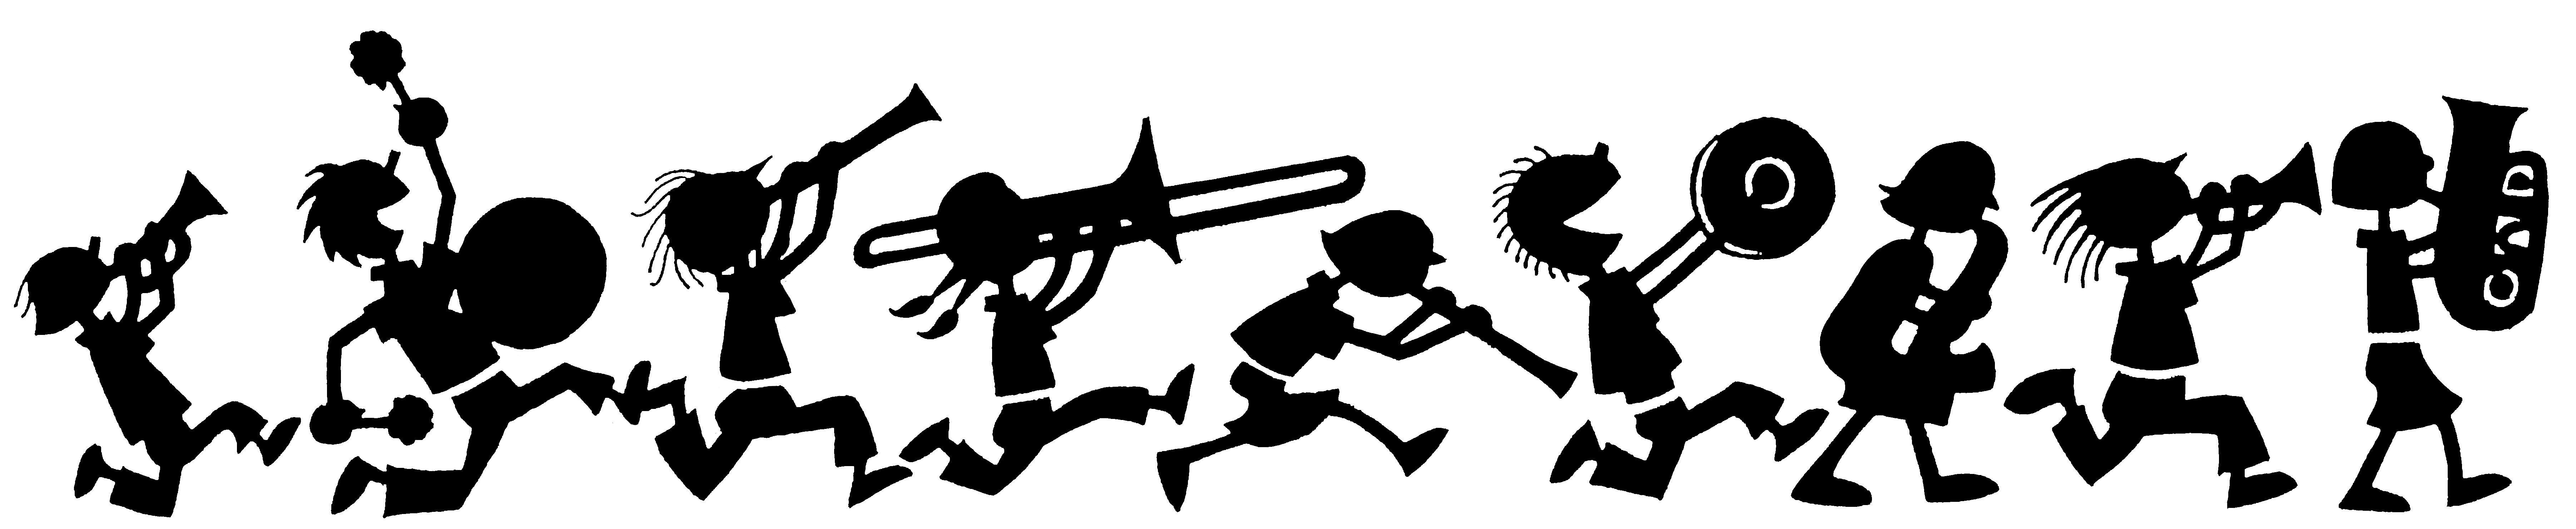 Band clipart 5th grade. Ms johnsen s elementary